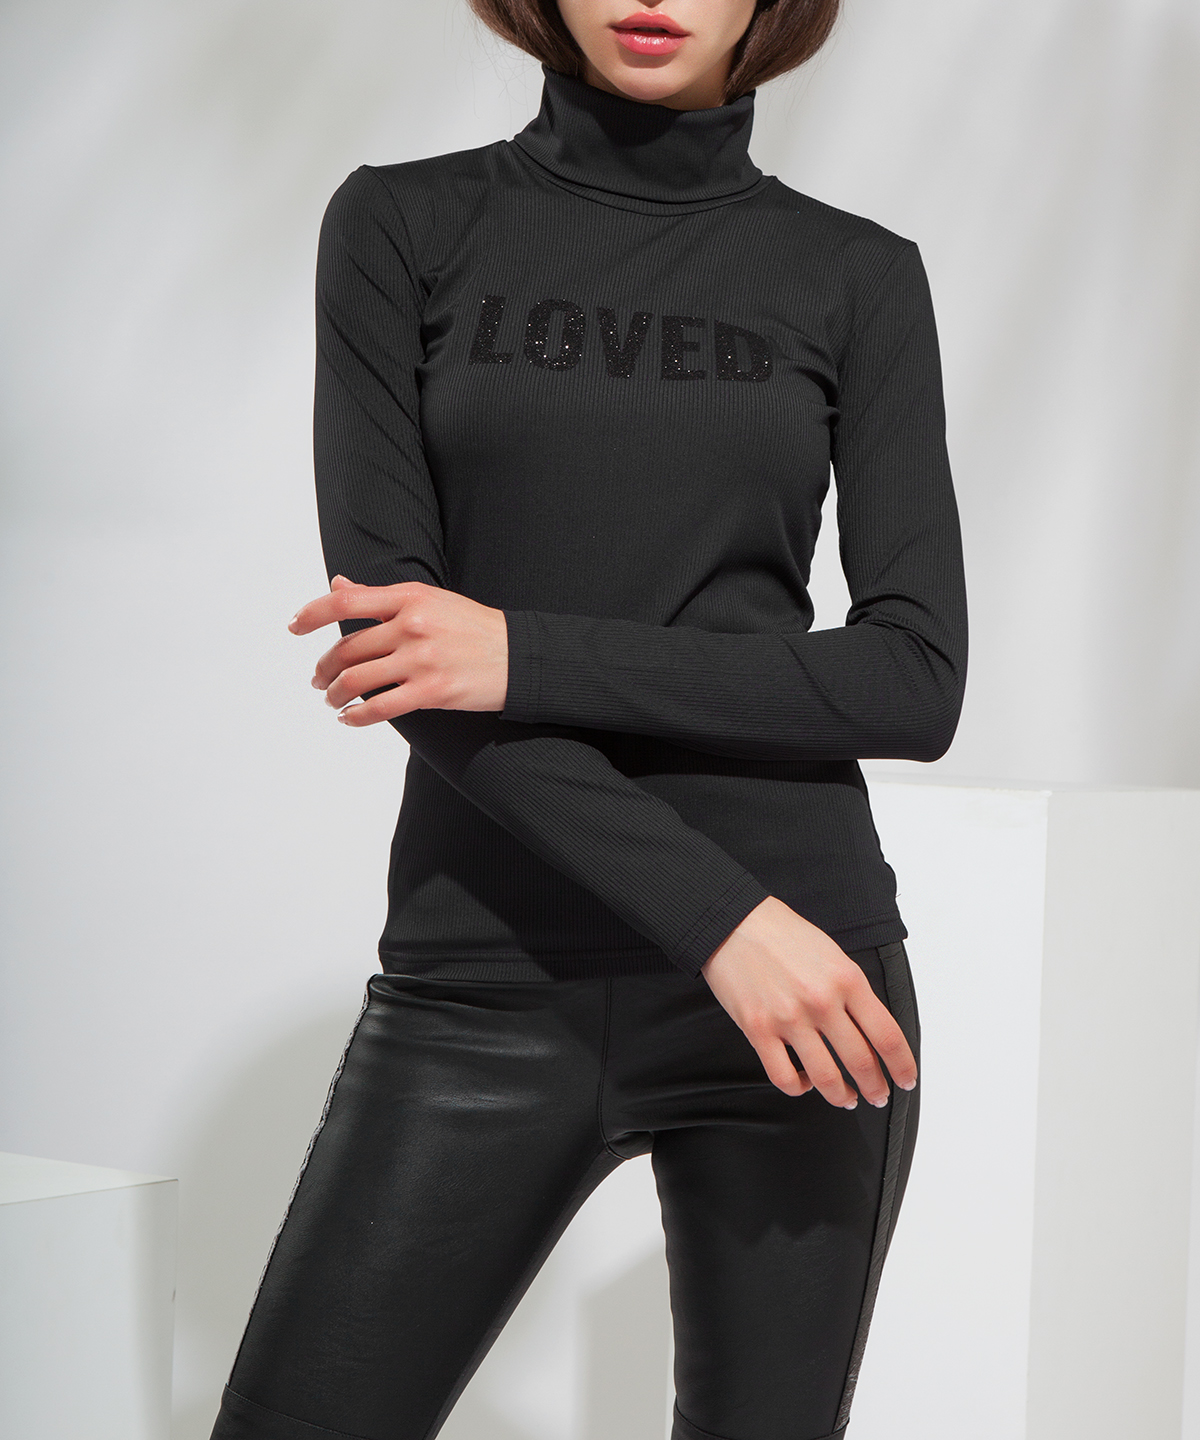 'Loved' blouse